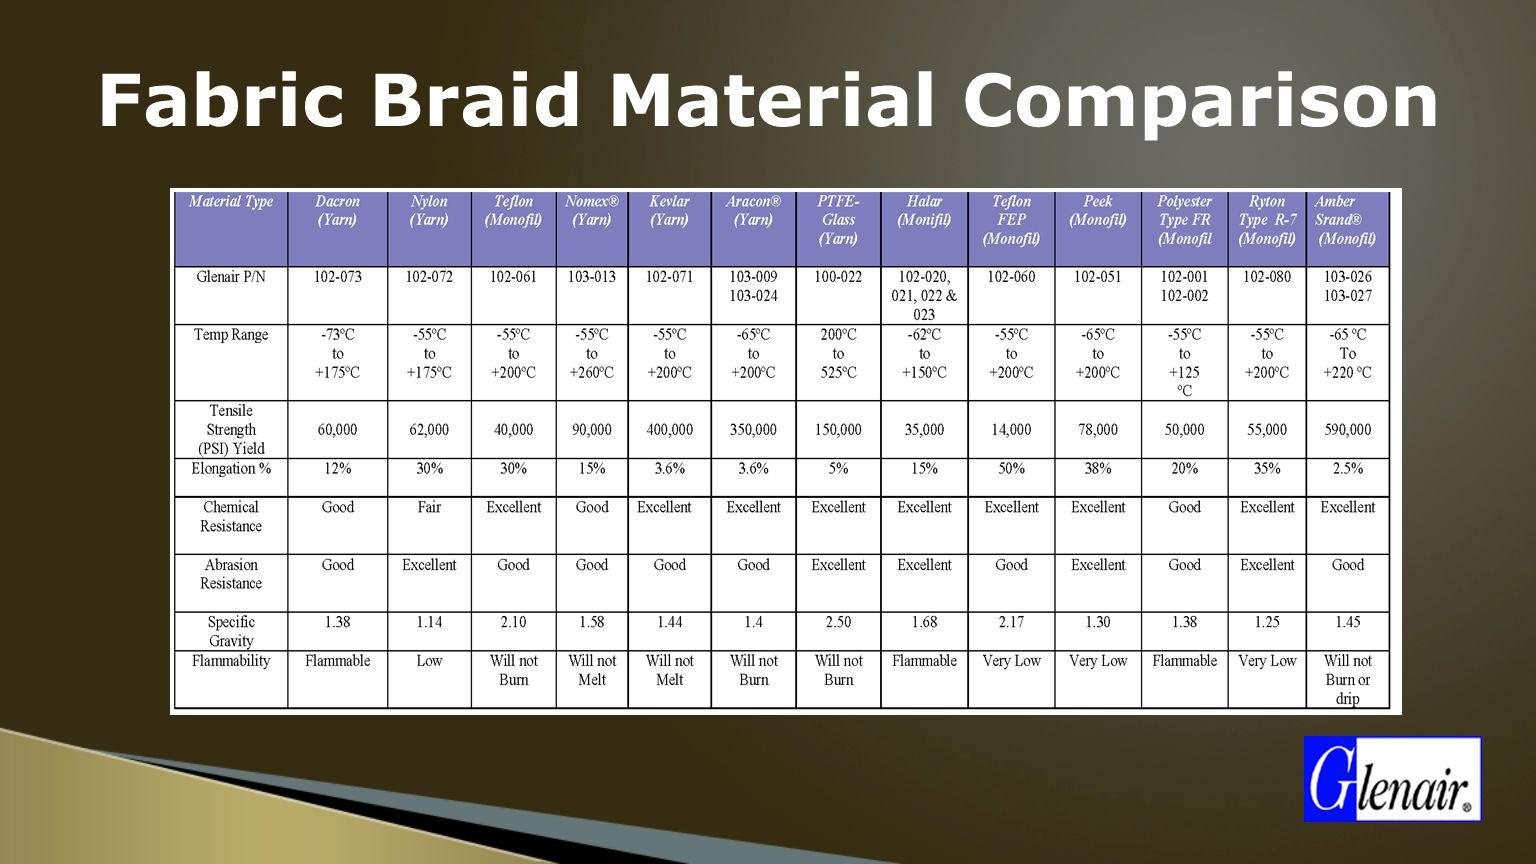 Fabric Braid Material Comparison